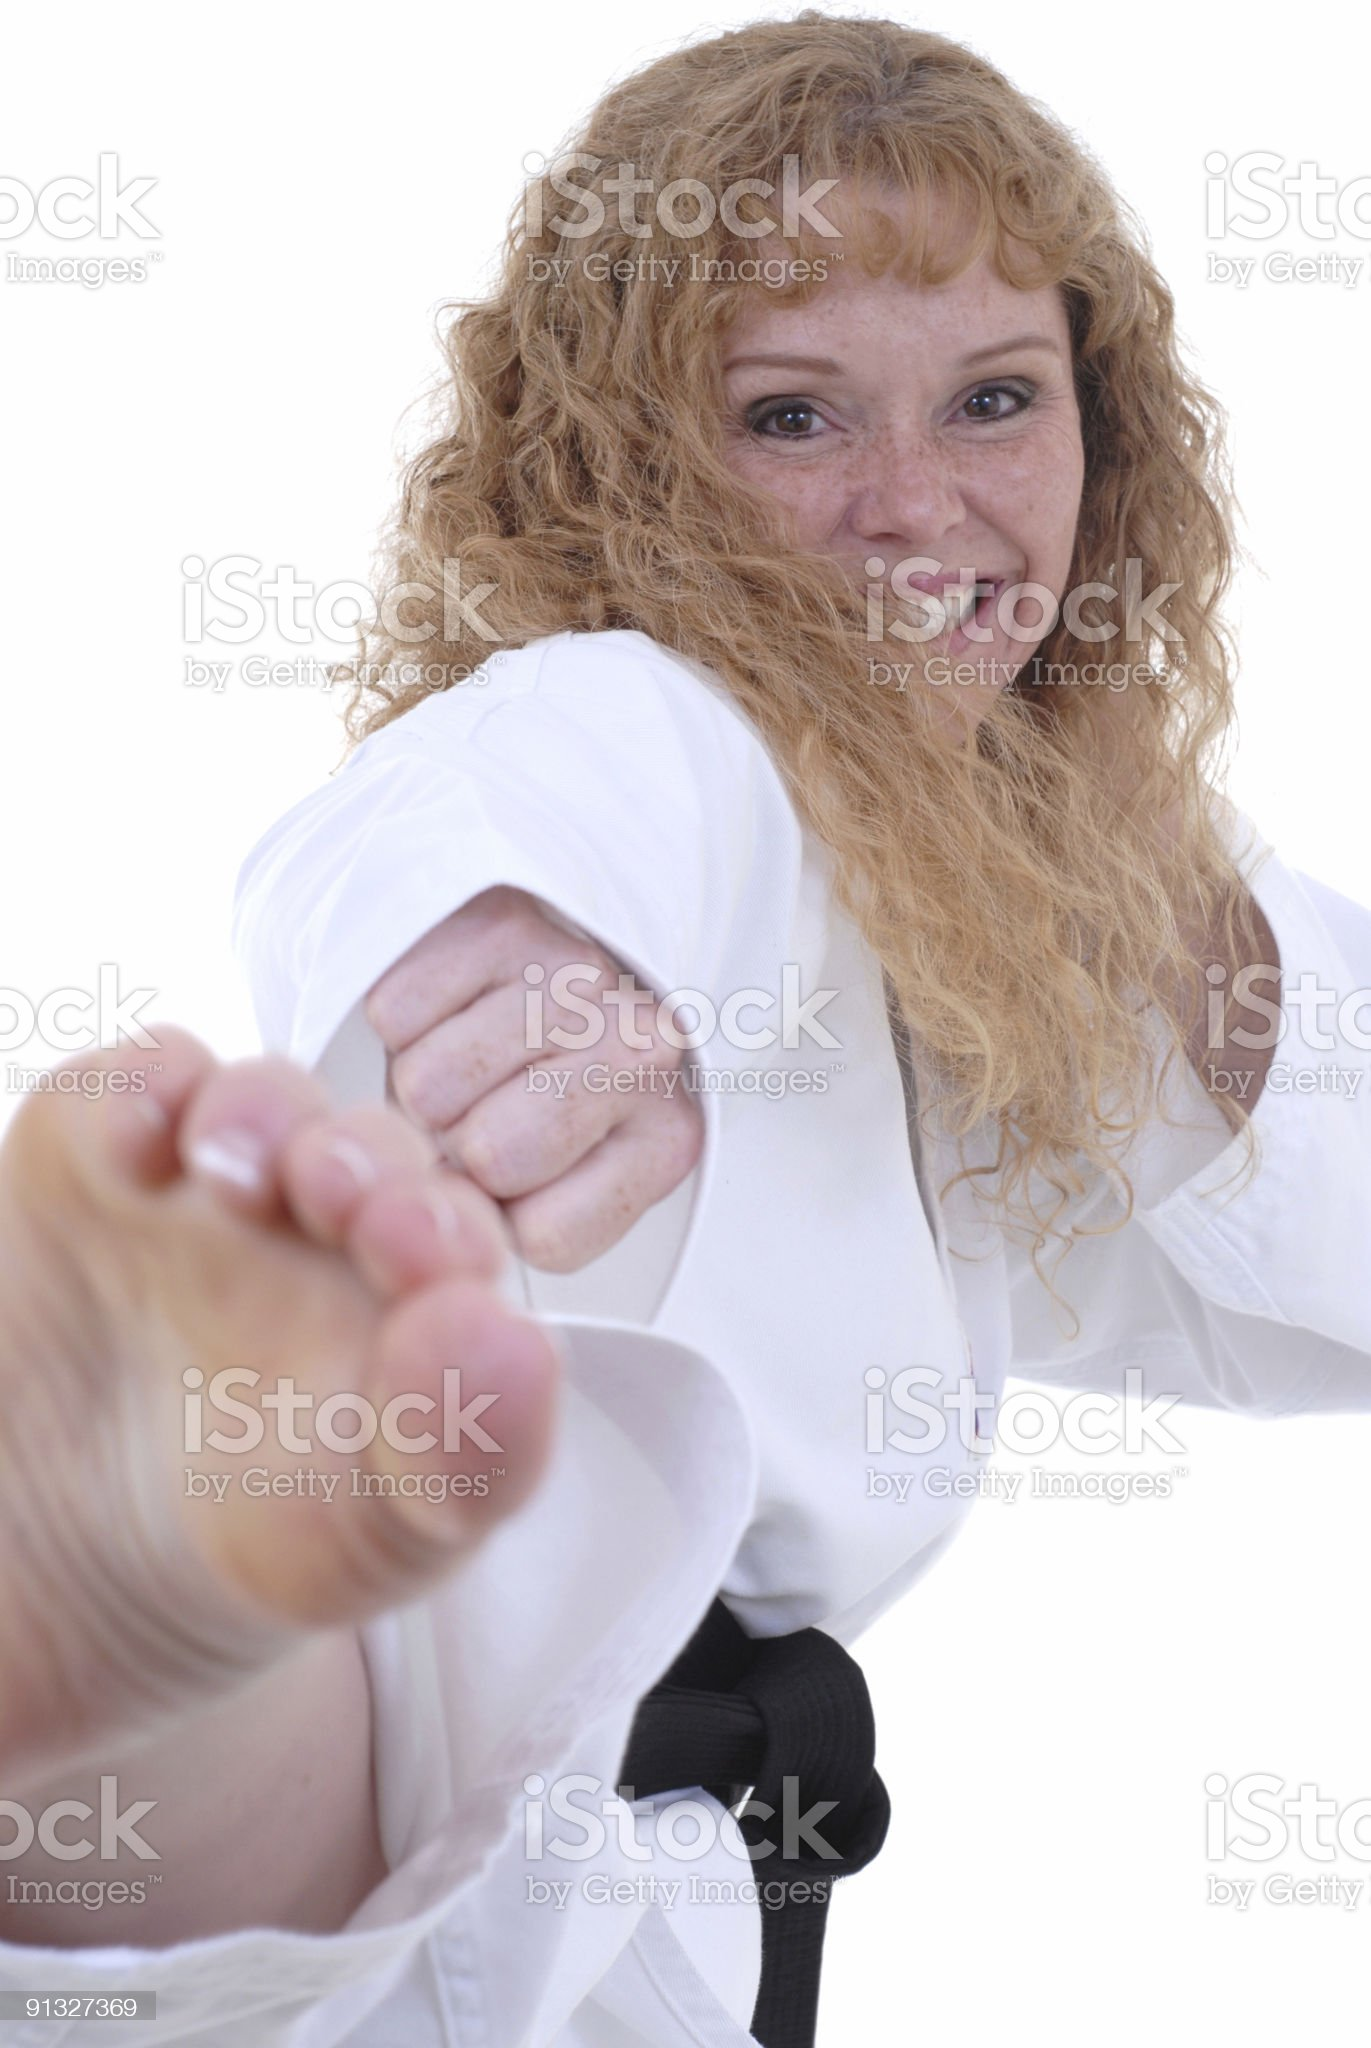 Can't stop her! royalty-free stock photo